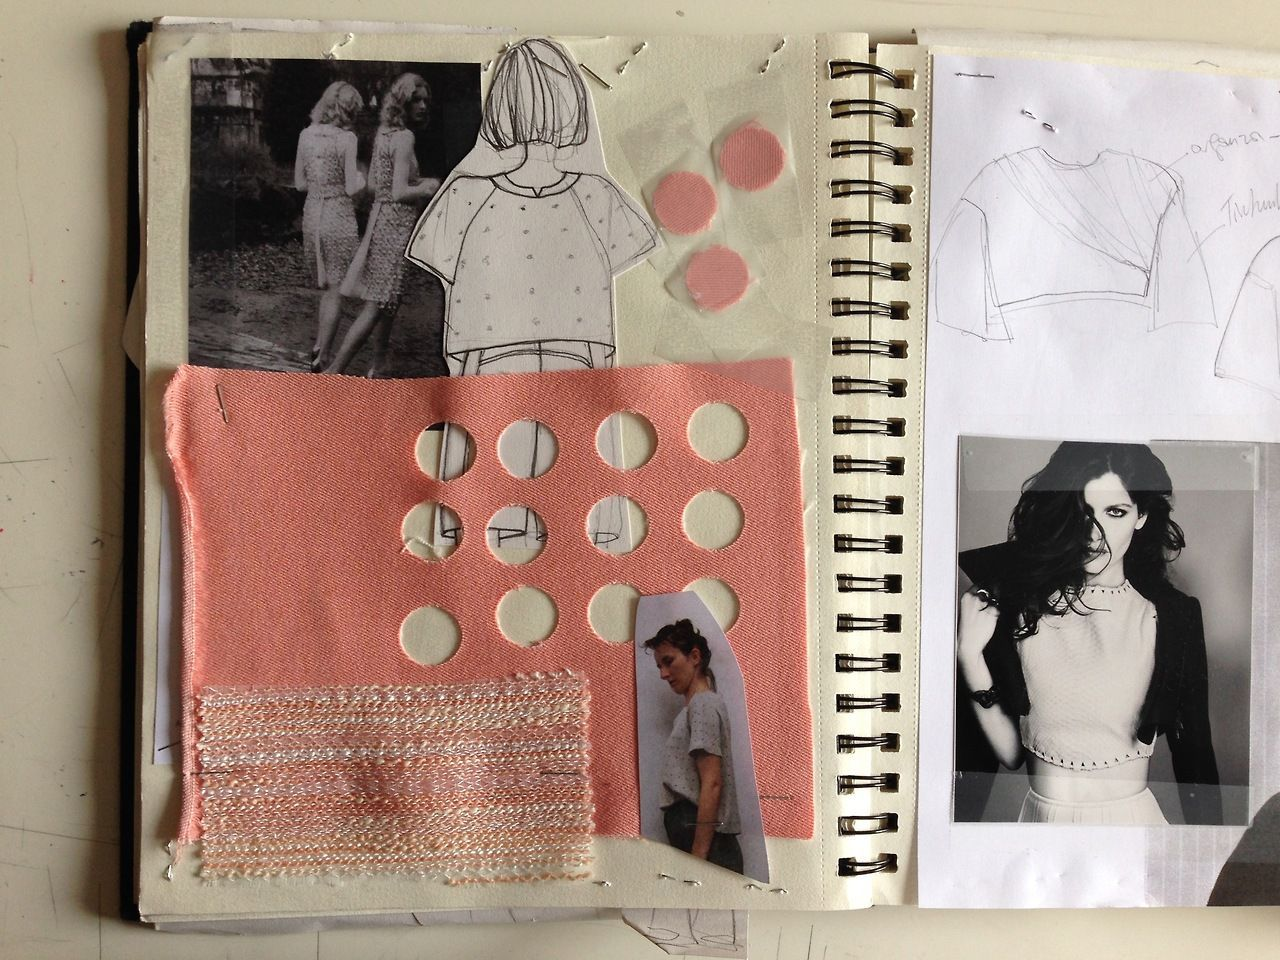 Sketchbook - fashion design process with research, sketching & fabric sampling; developing a fashion collection // Pitchouguina